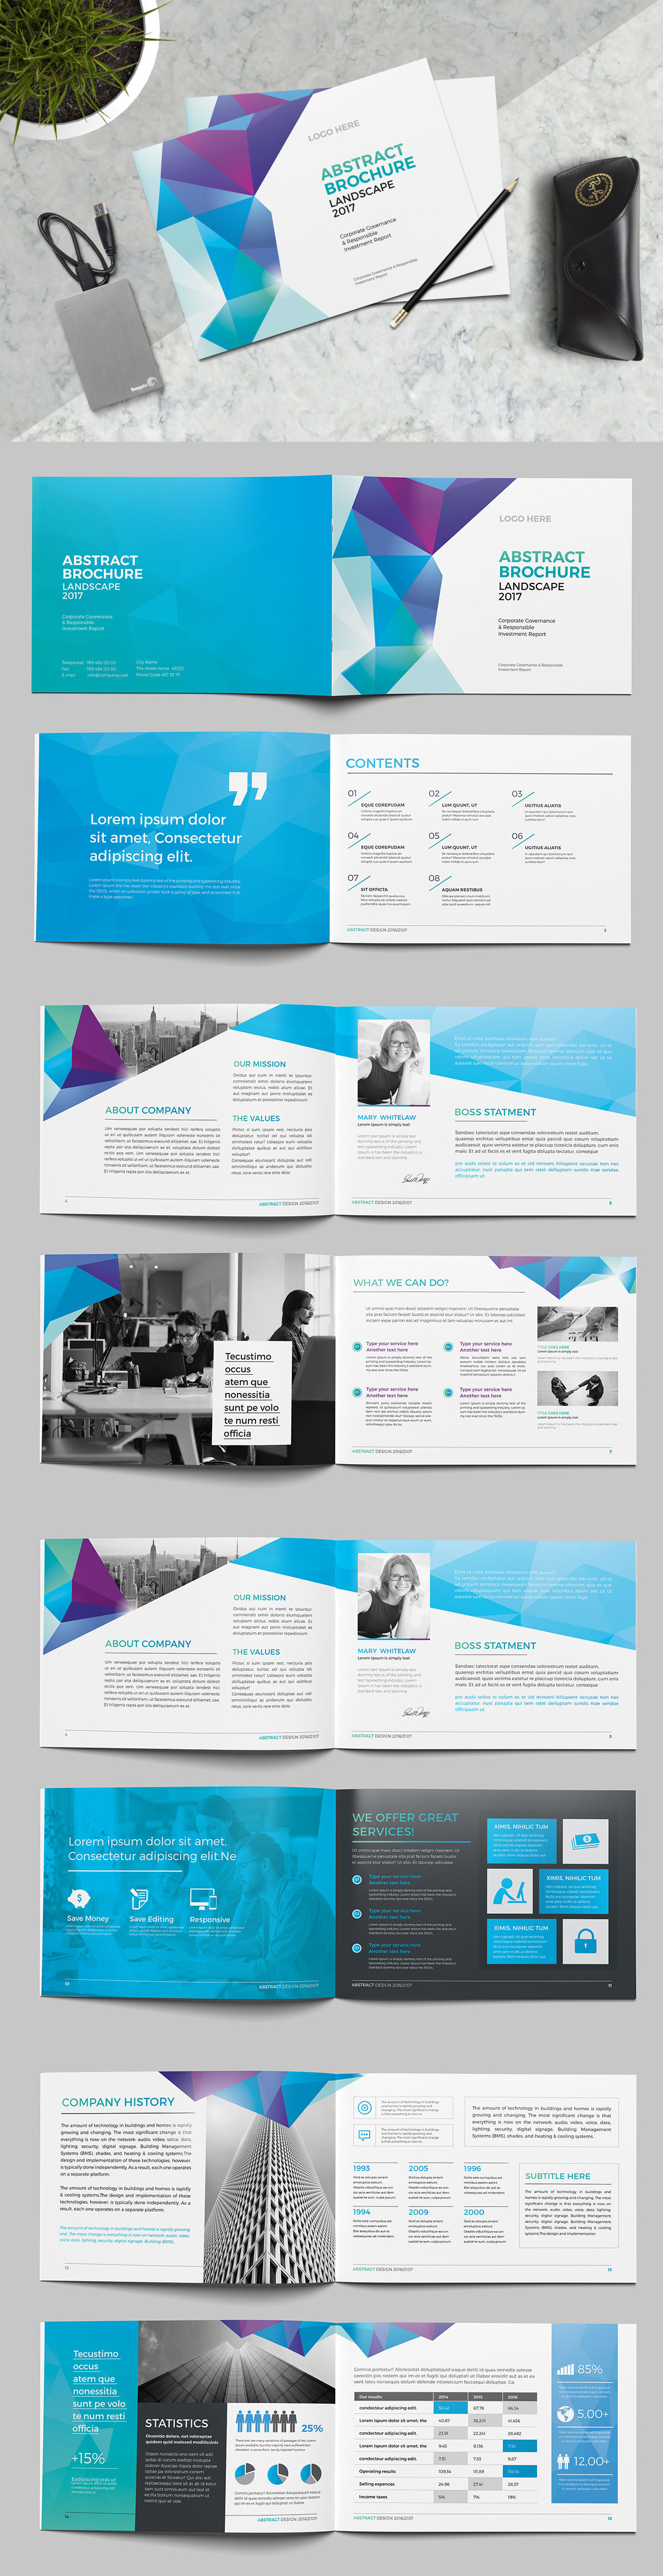 Abstract Landscape Brochure Template Indesign Indd  Brochure